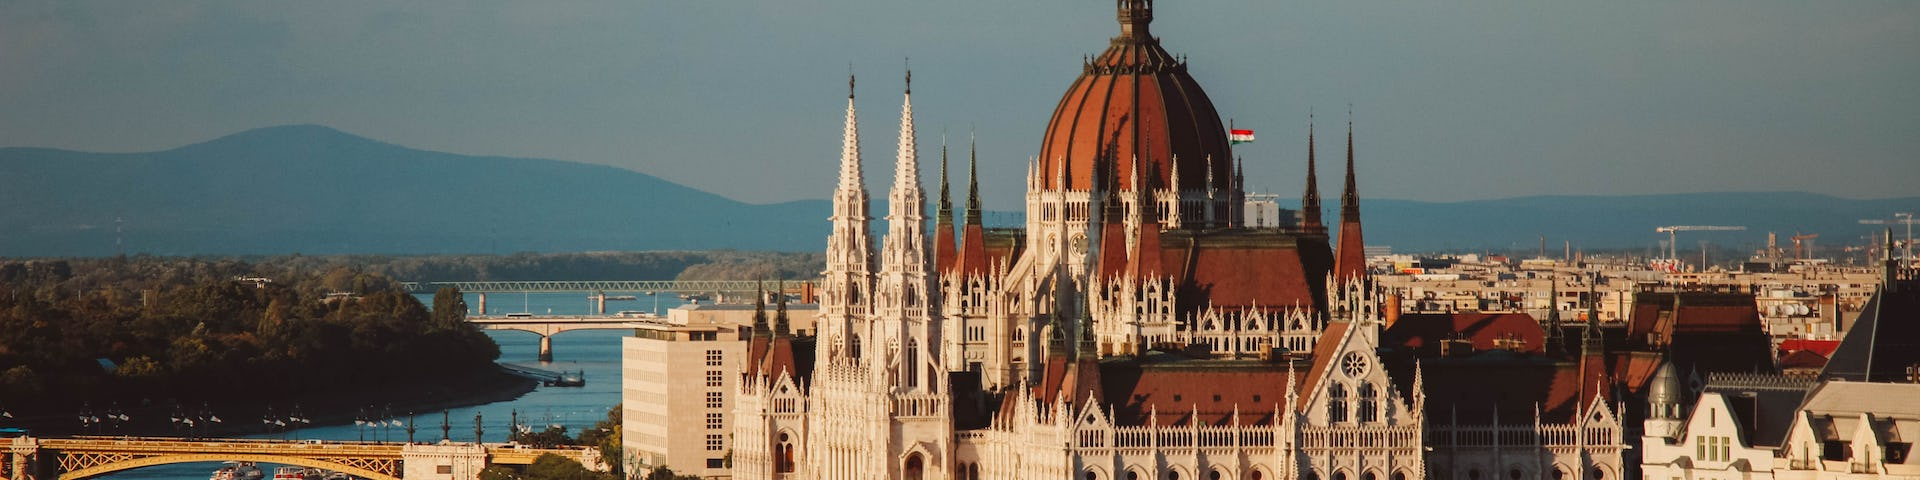 Study in Hungary - Home | Facebook